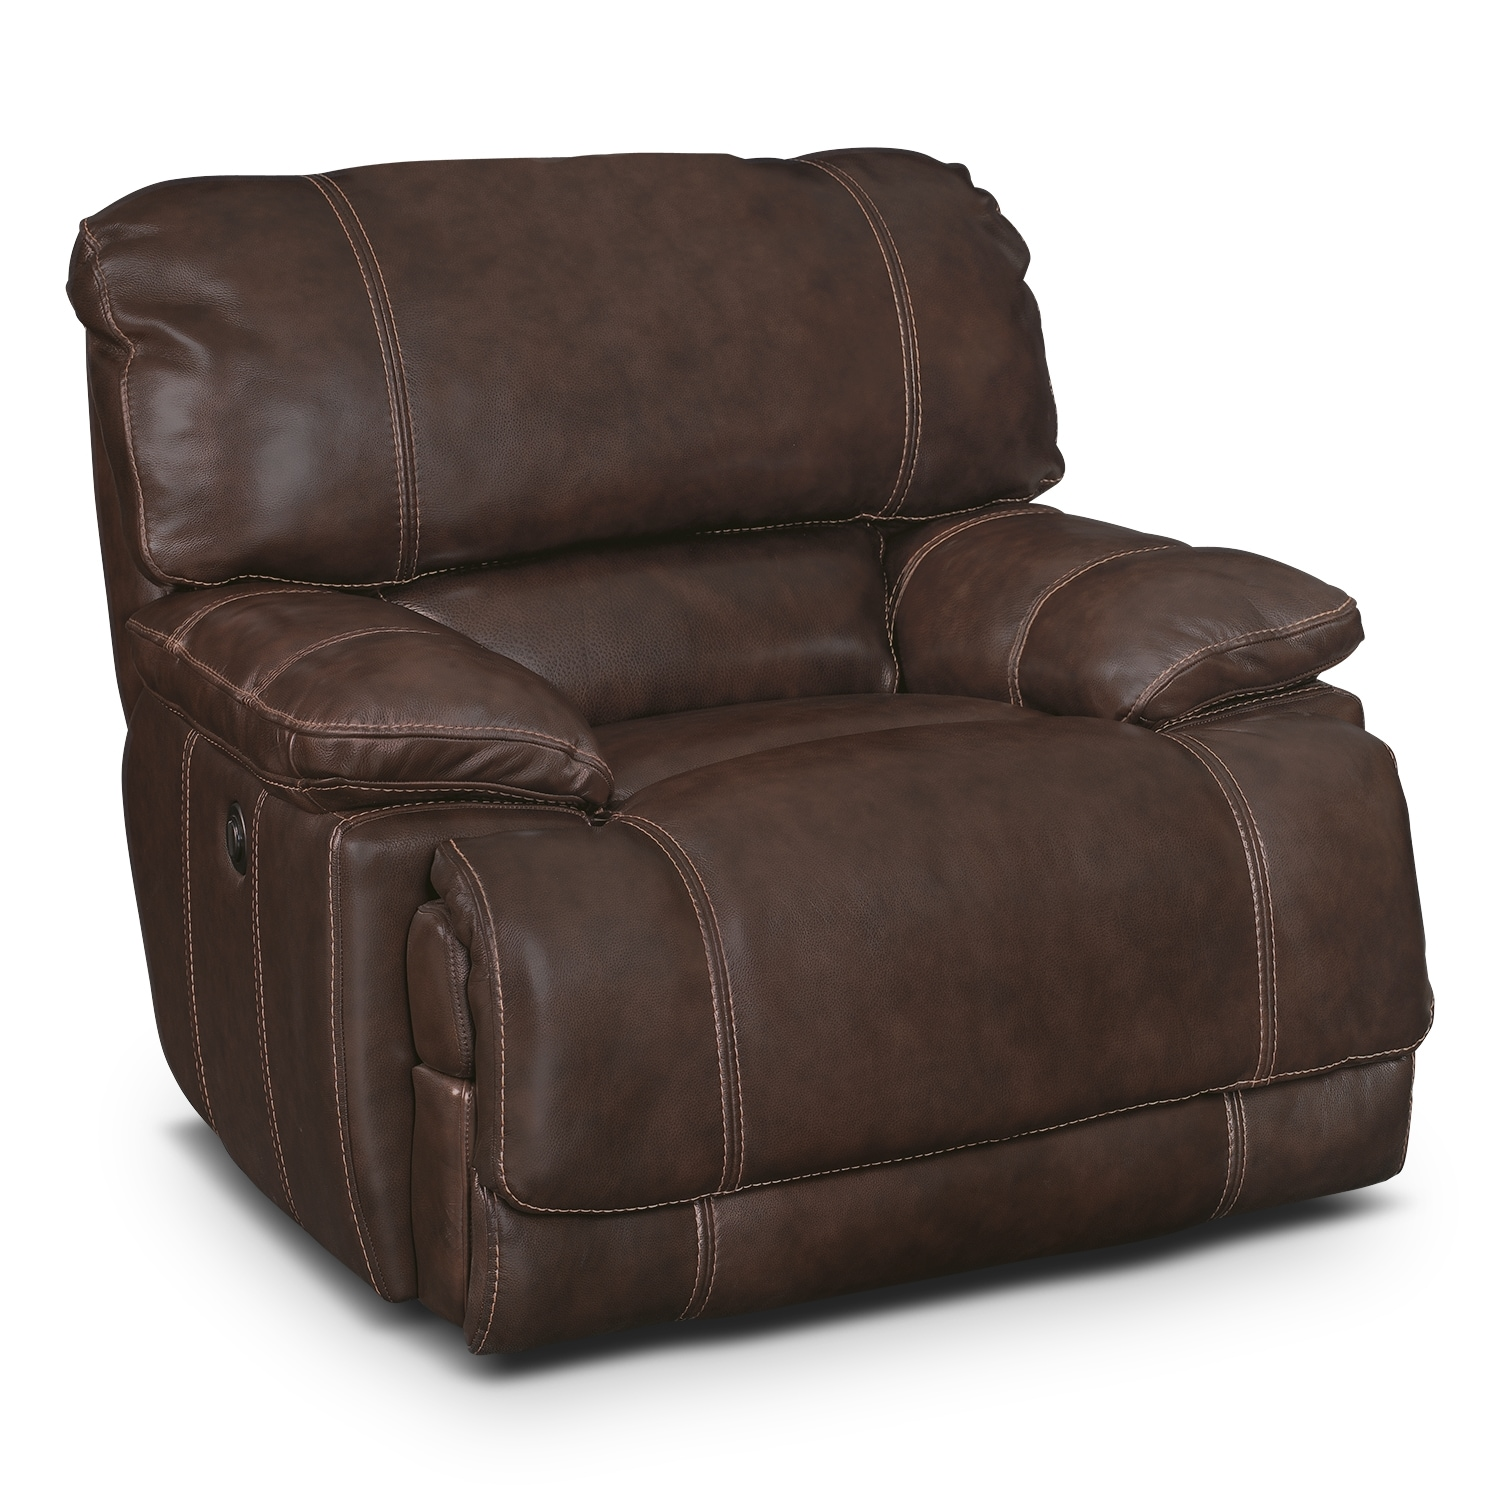 St. Malo Power Recliner